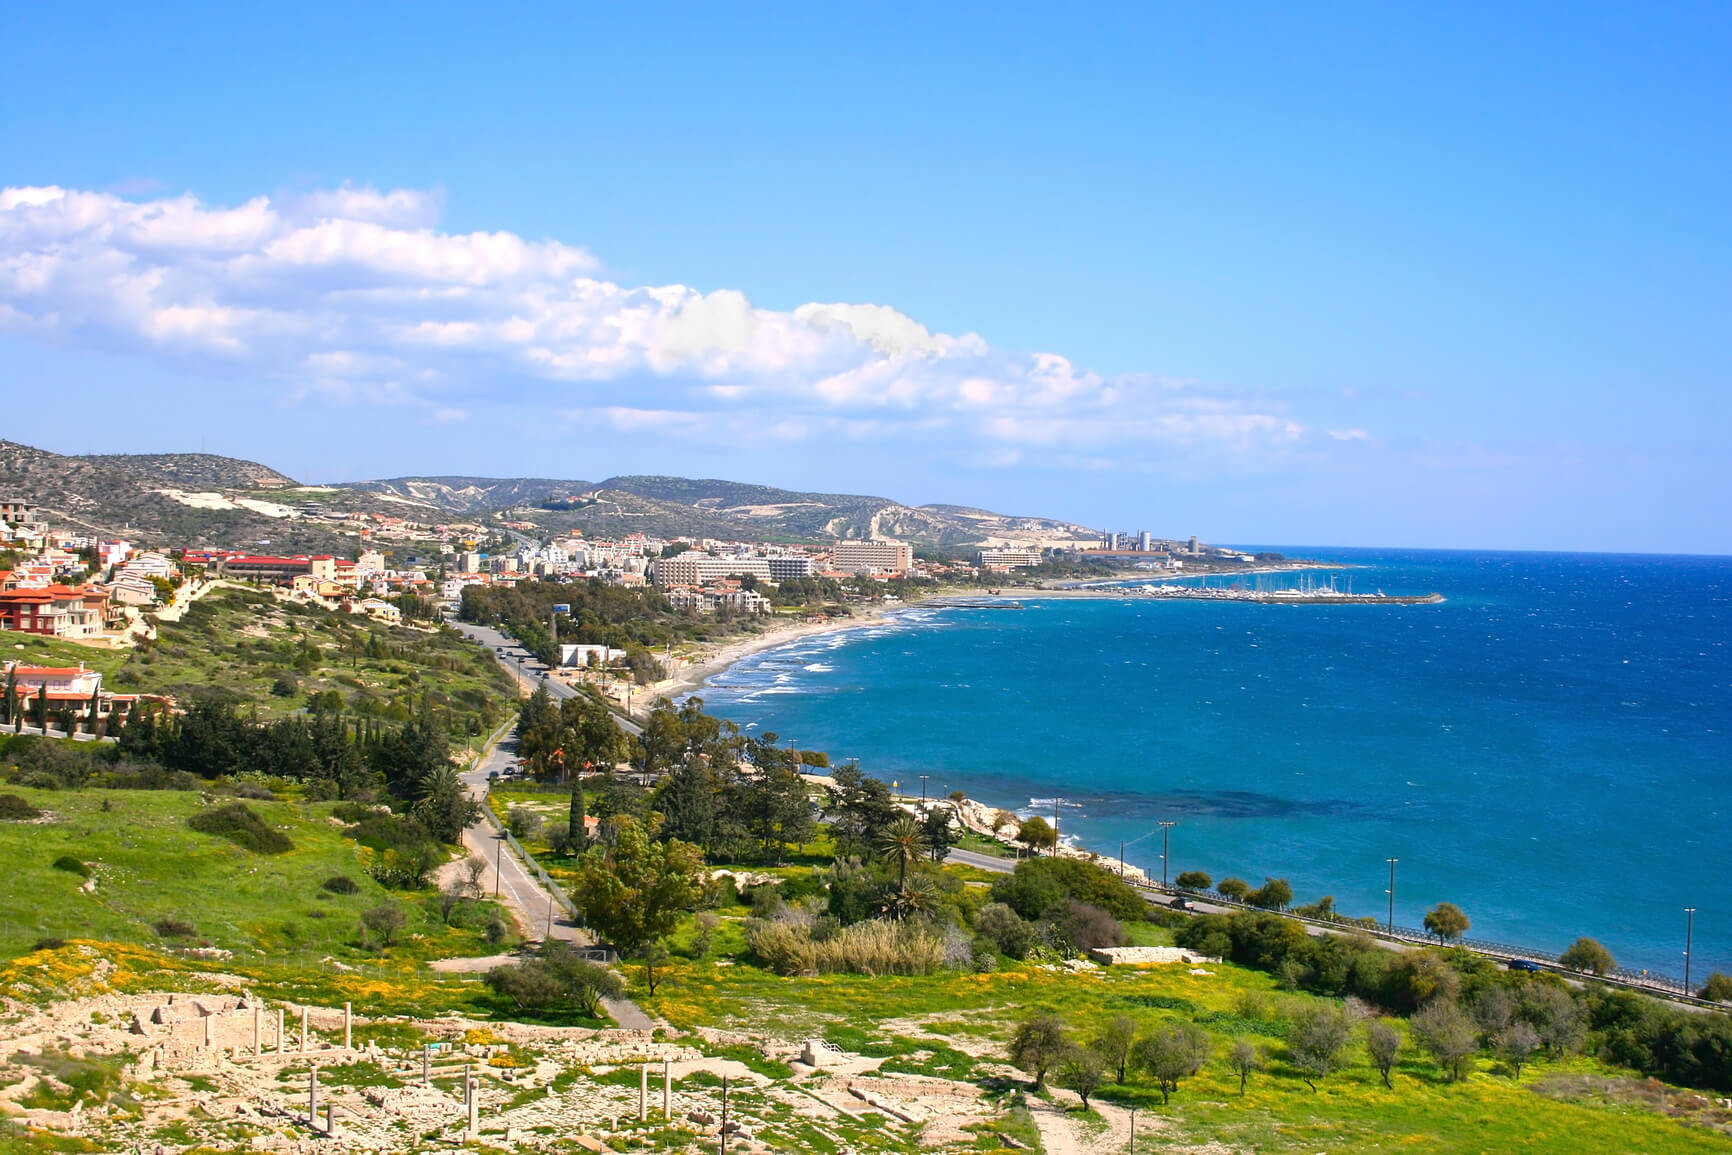 Budapest, Hungary to Larnaca, Cyprus for only €29 roundtrip (members only)